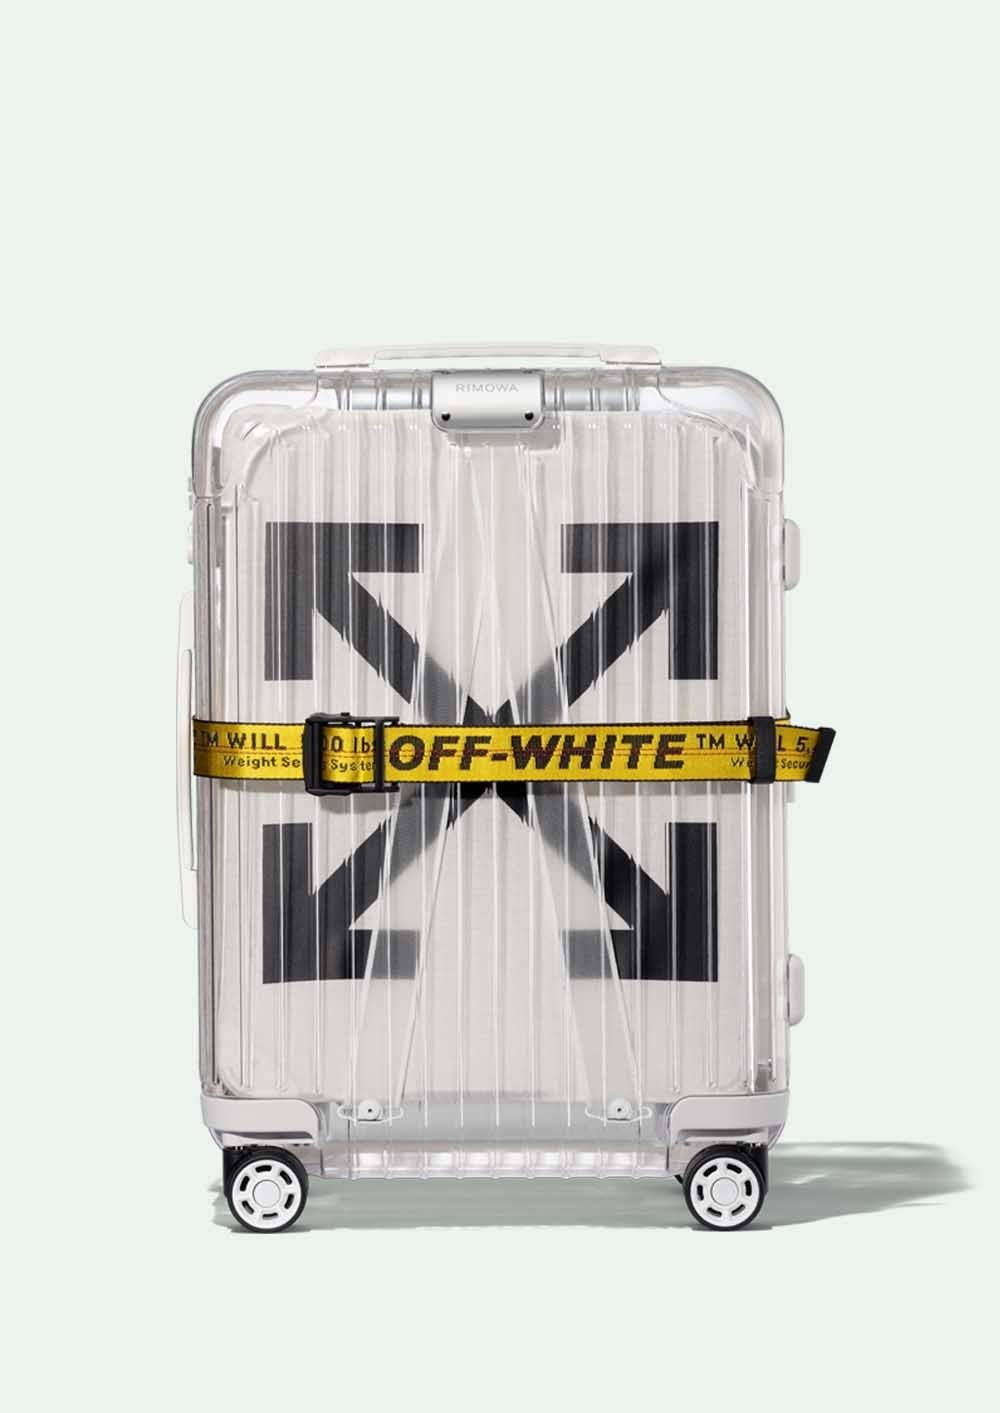 541d2838ab03 OFF WHITE - Luggage - OffWhite